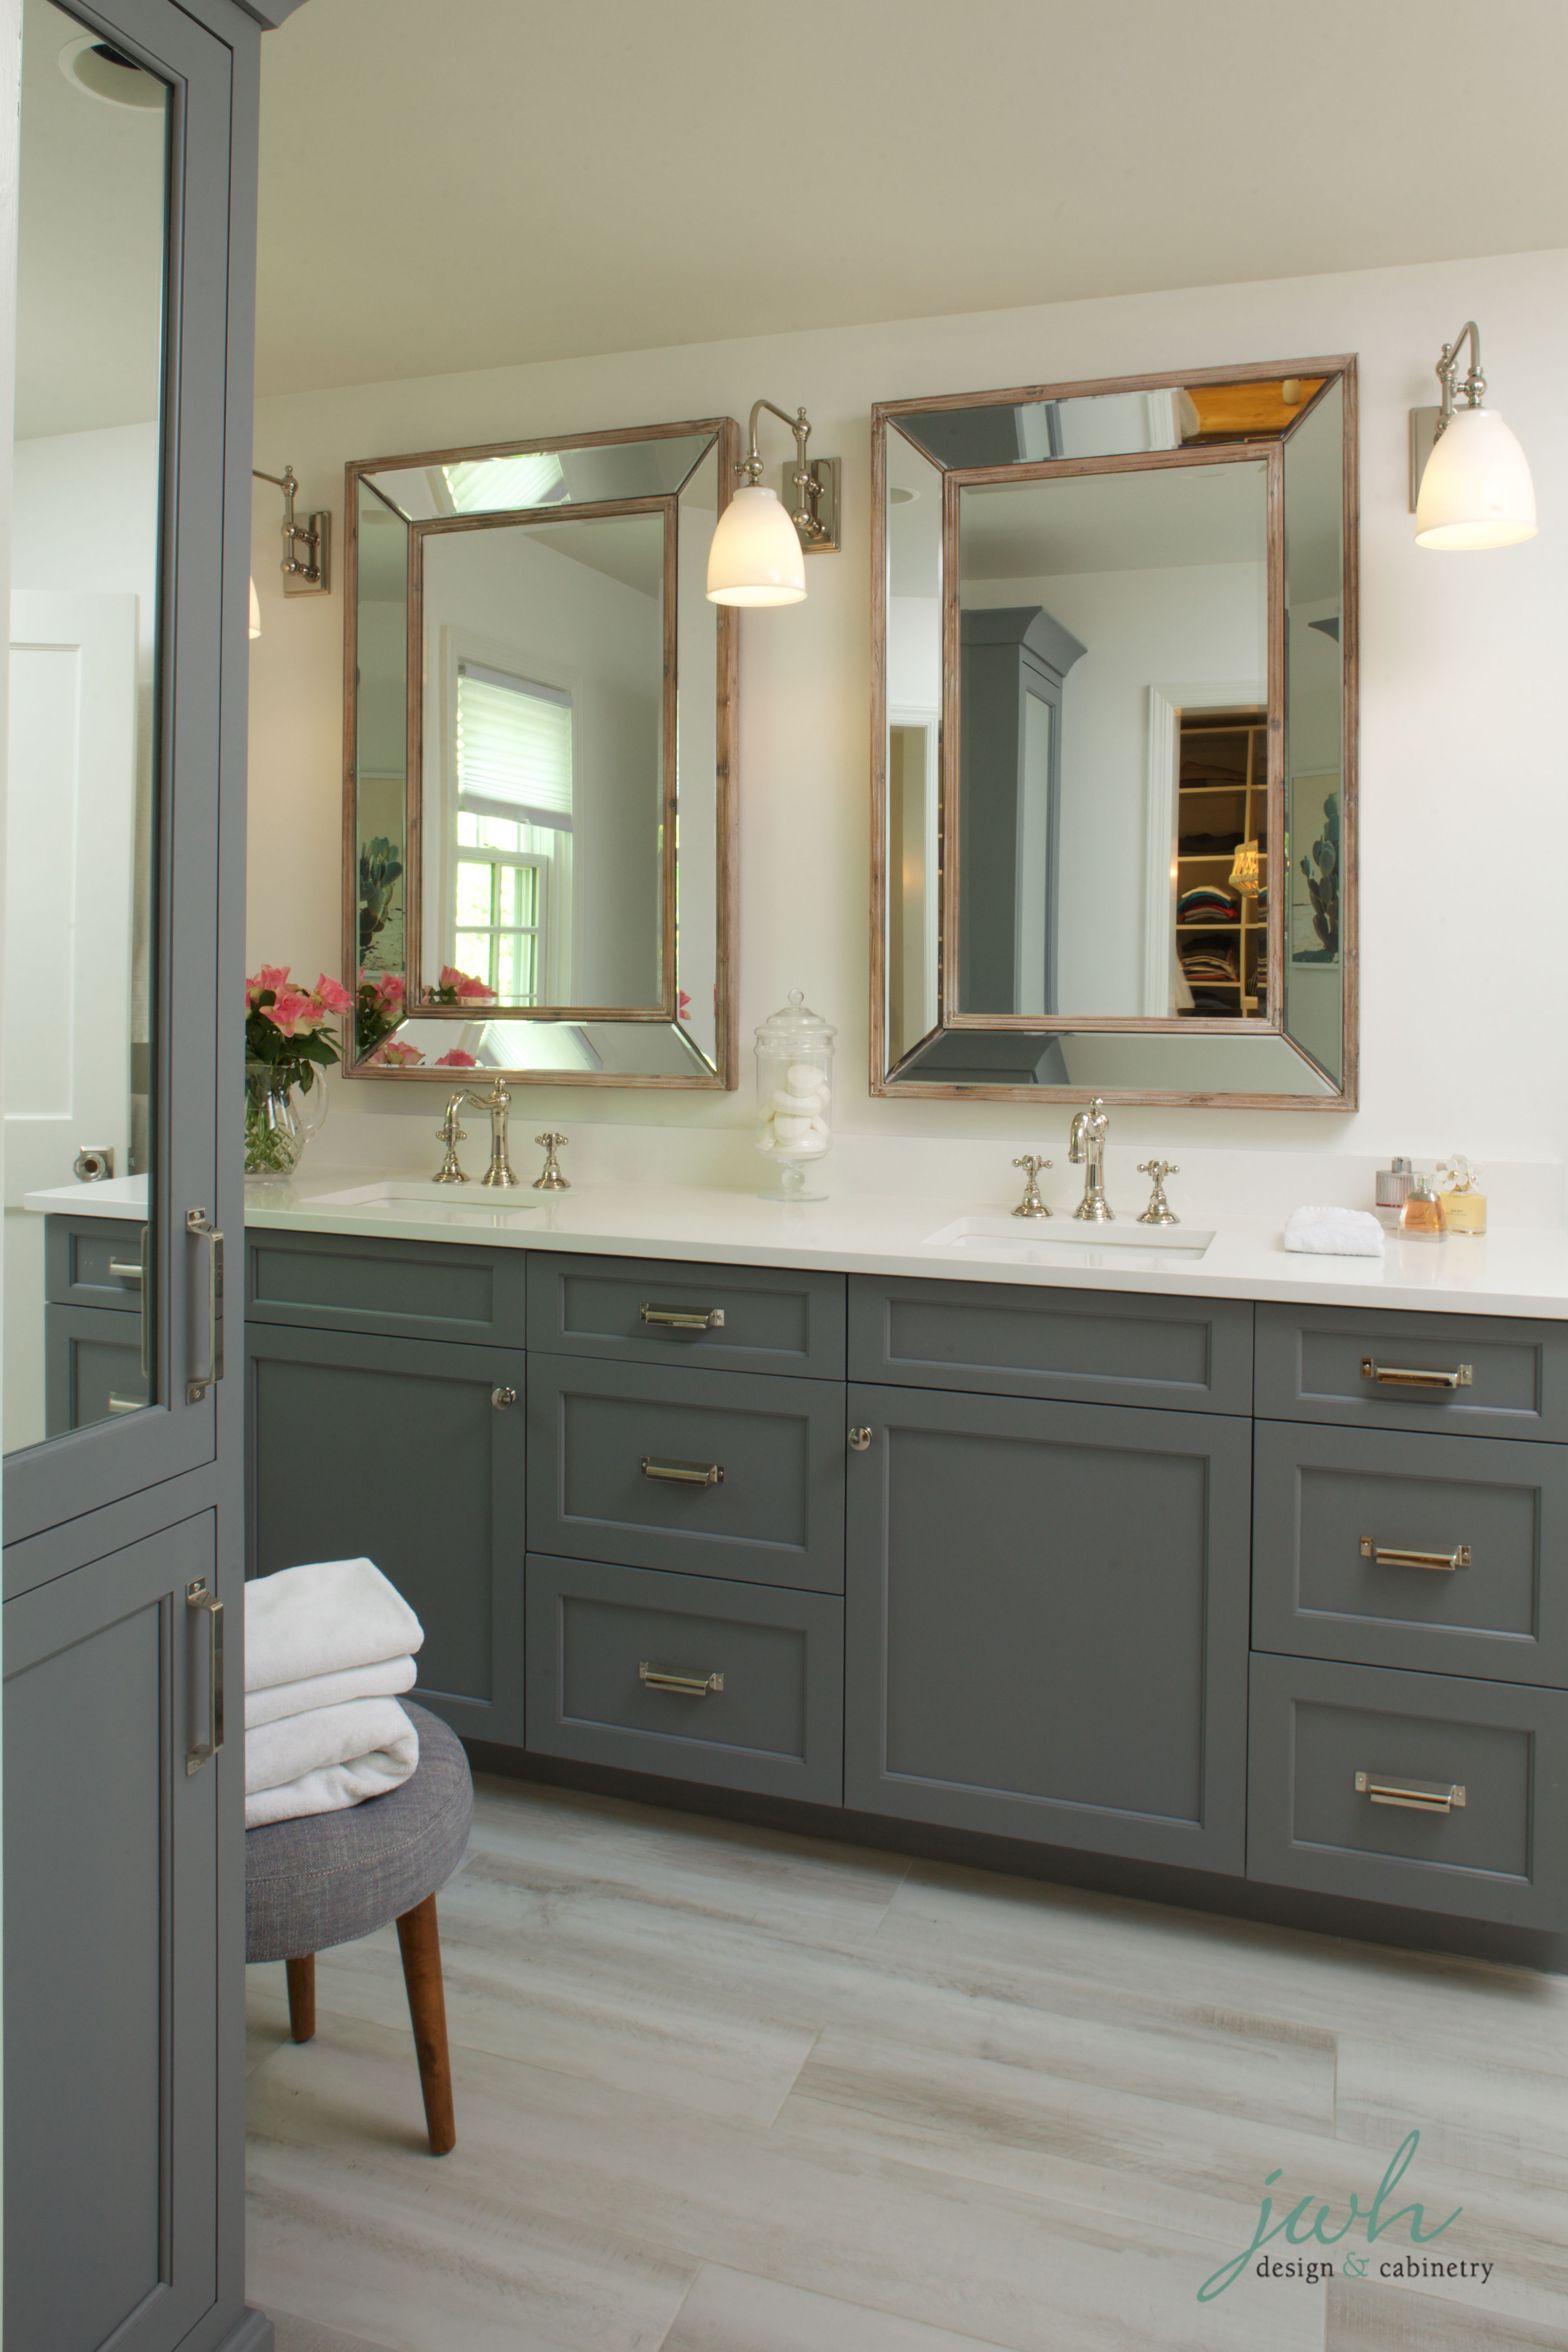 Sophisticated And Modern Bathroom Design Cabinetry